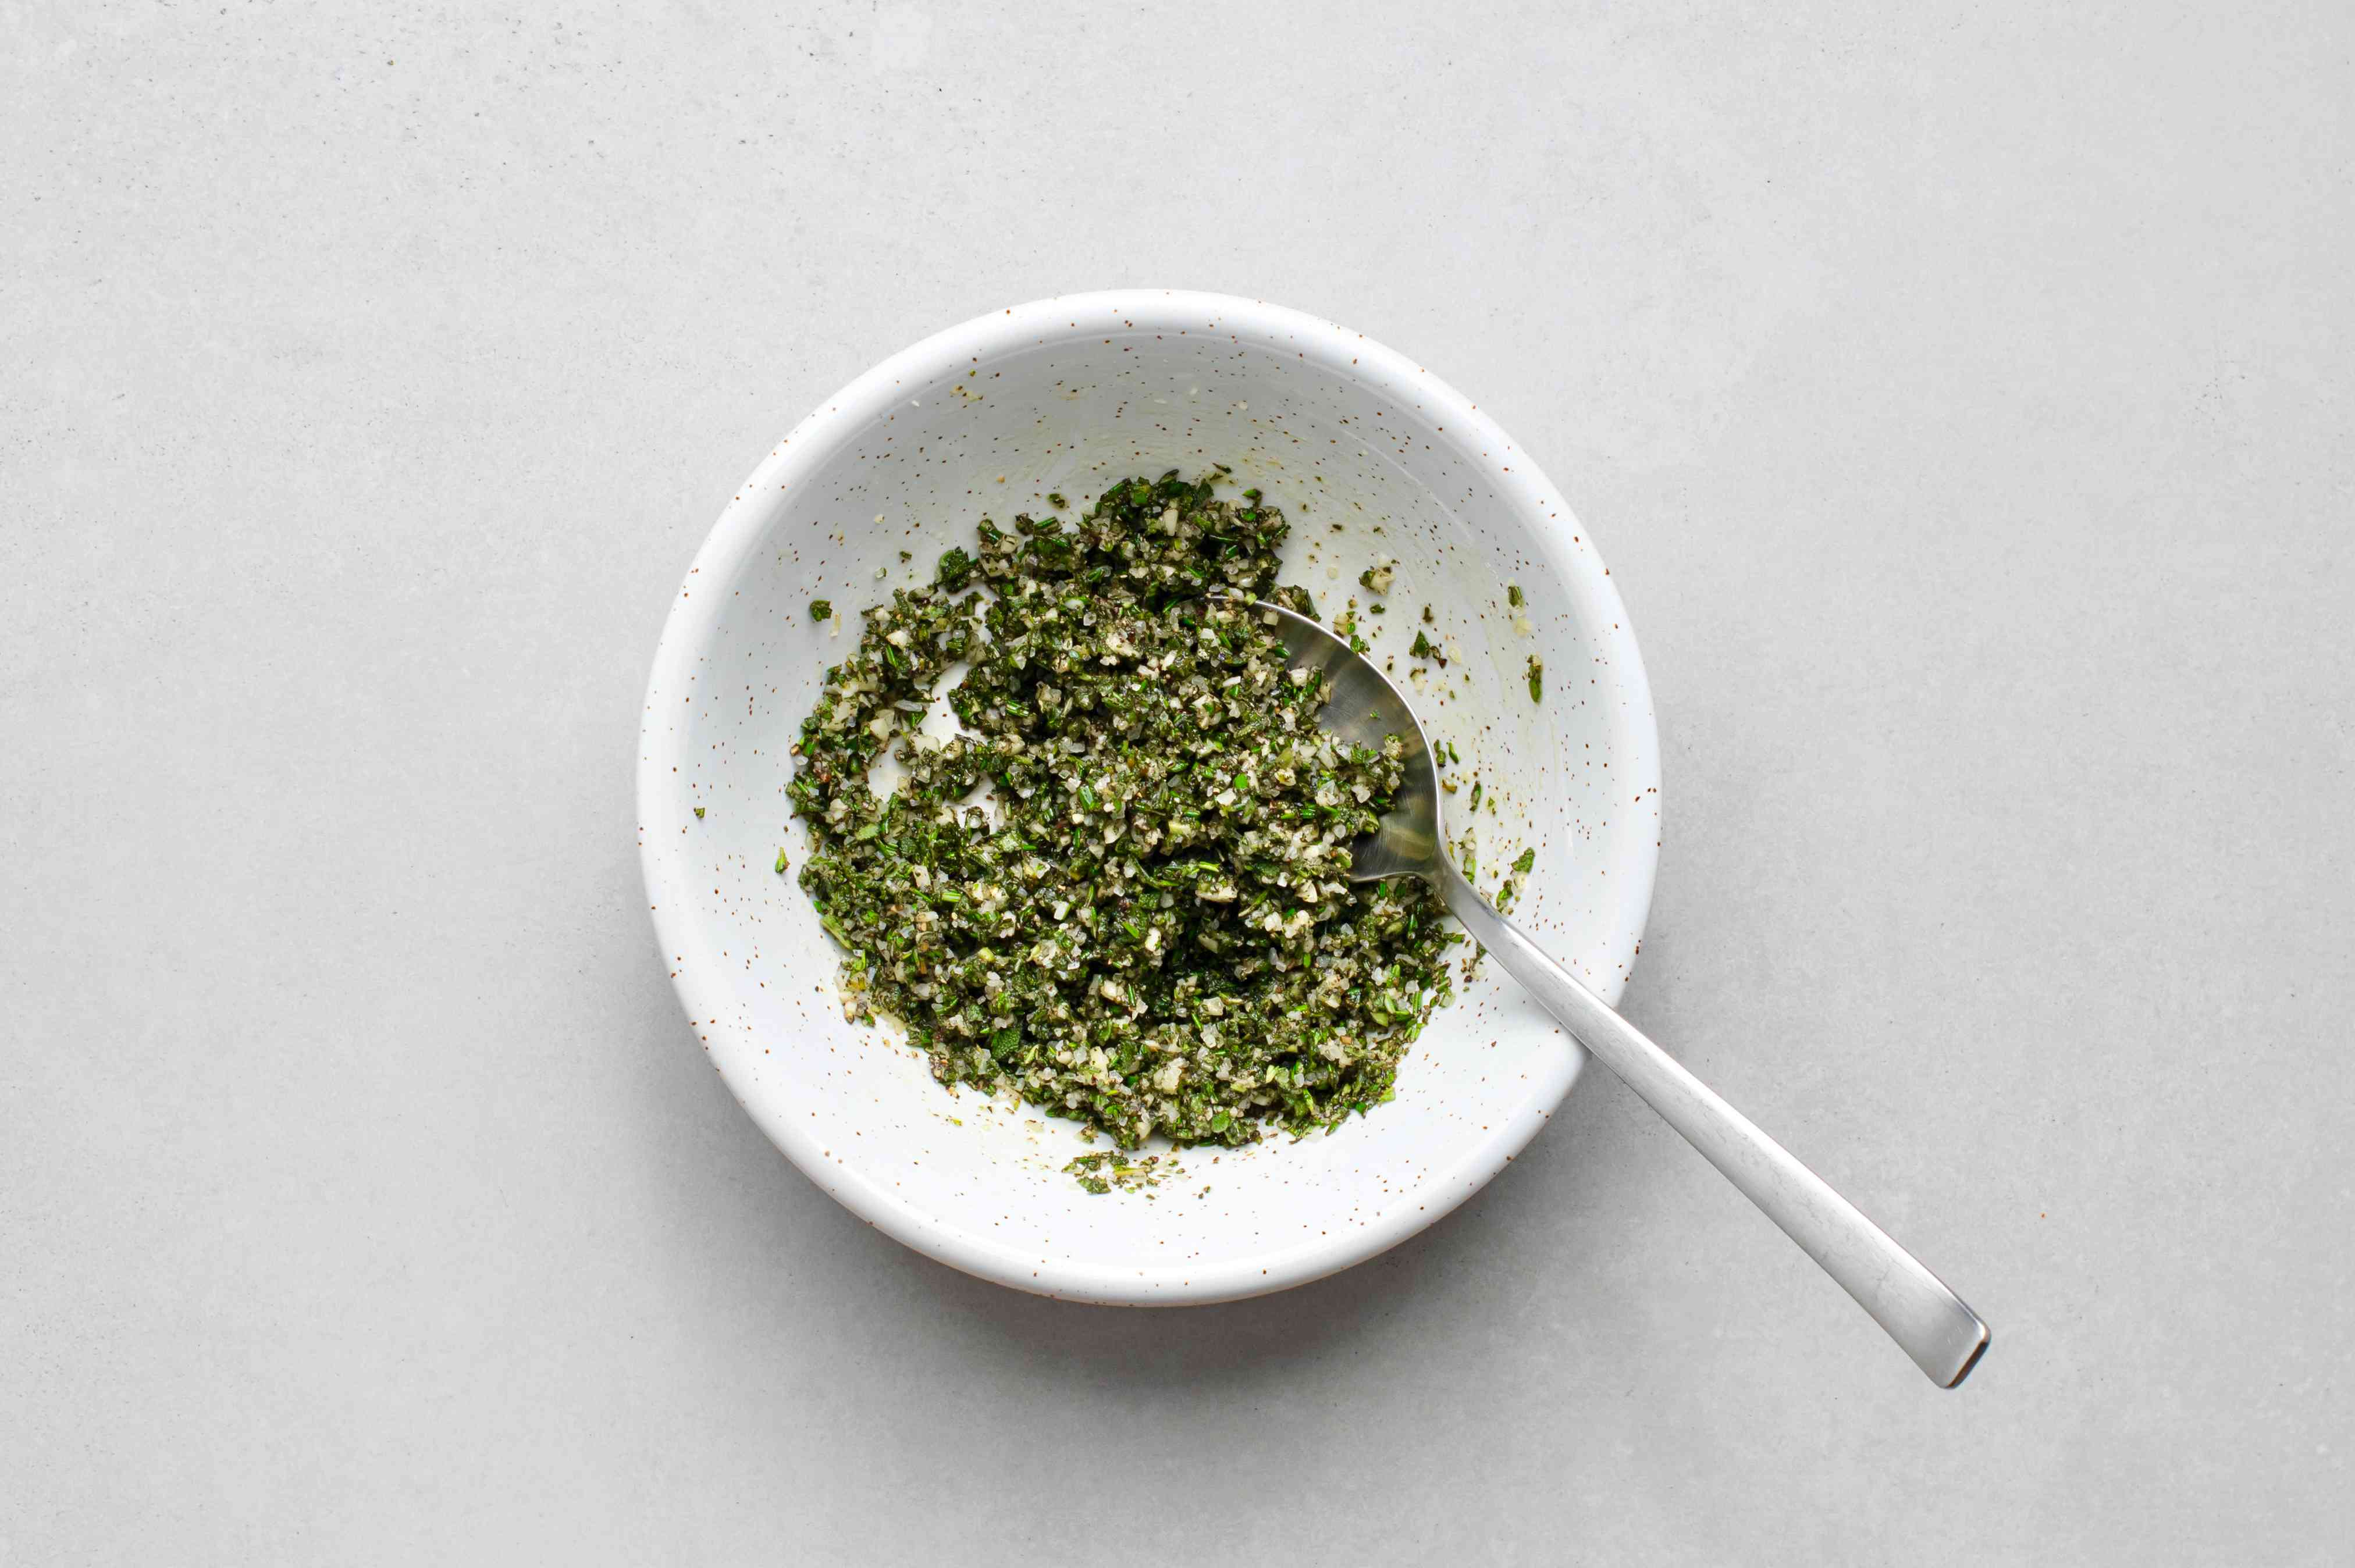 oil, garlic, salt, pepper, sage, rosemary, and thyme in a bowl